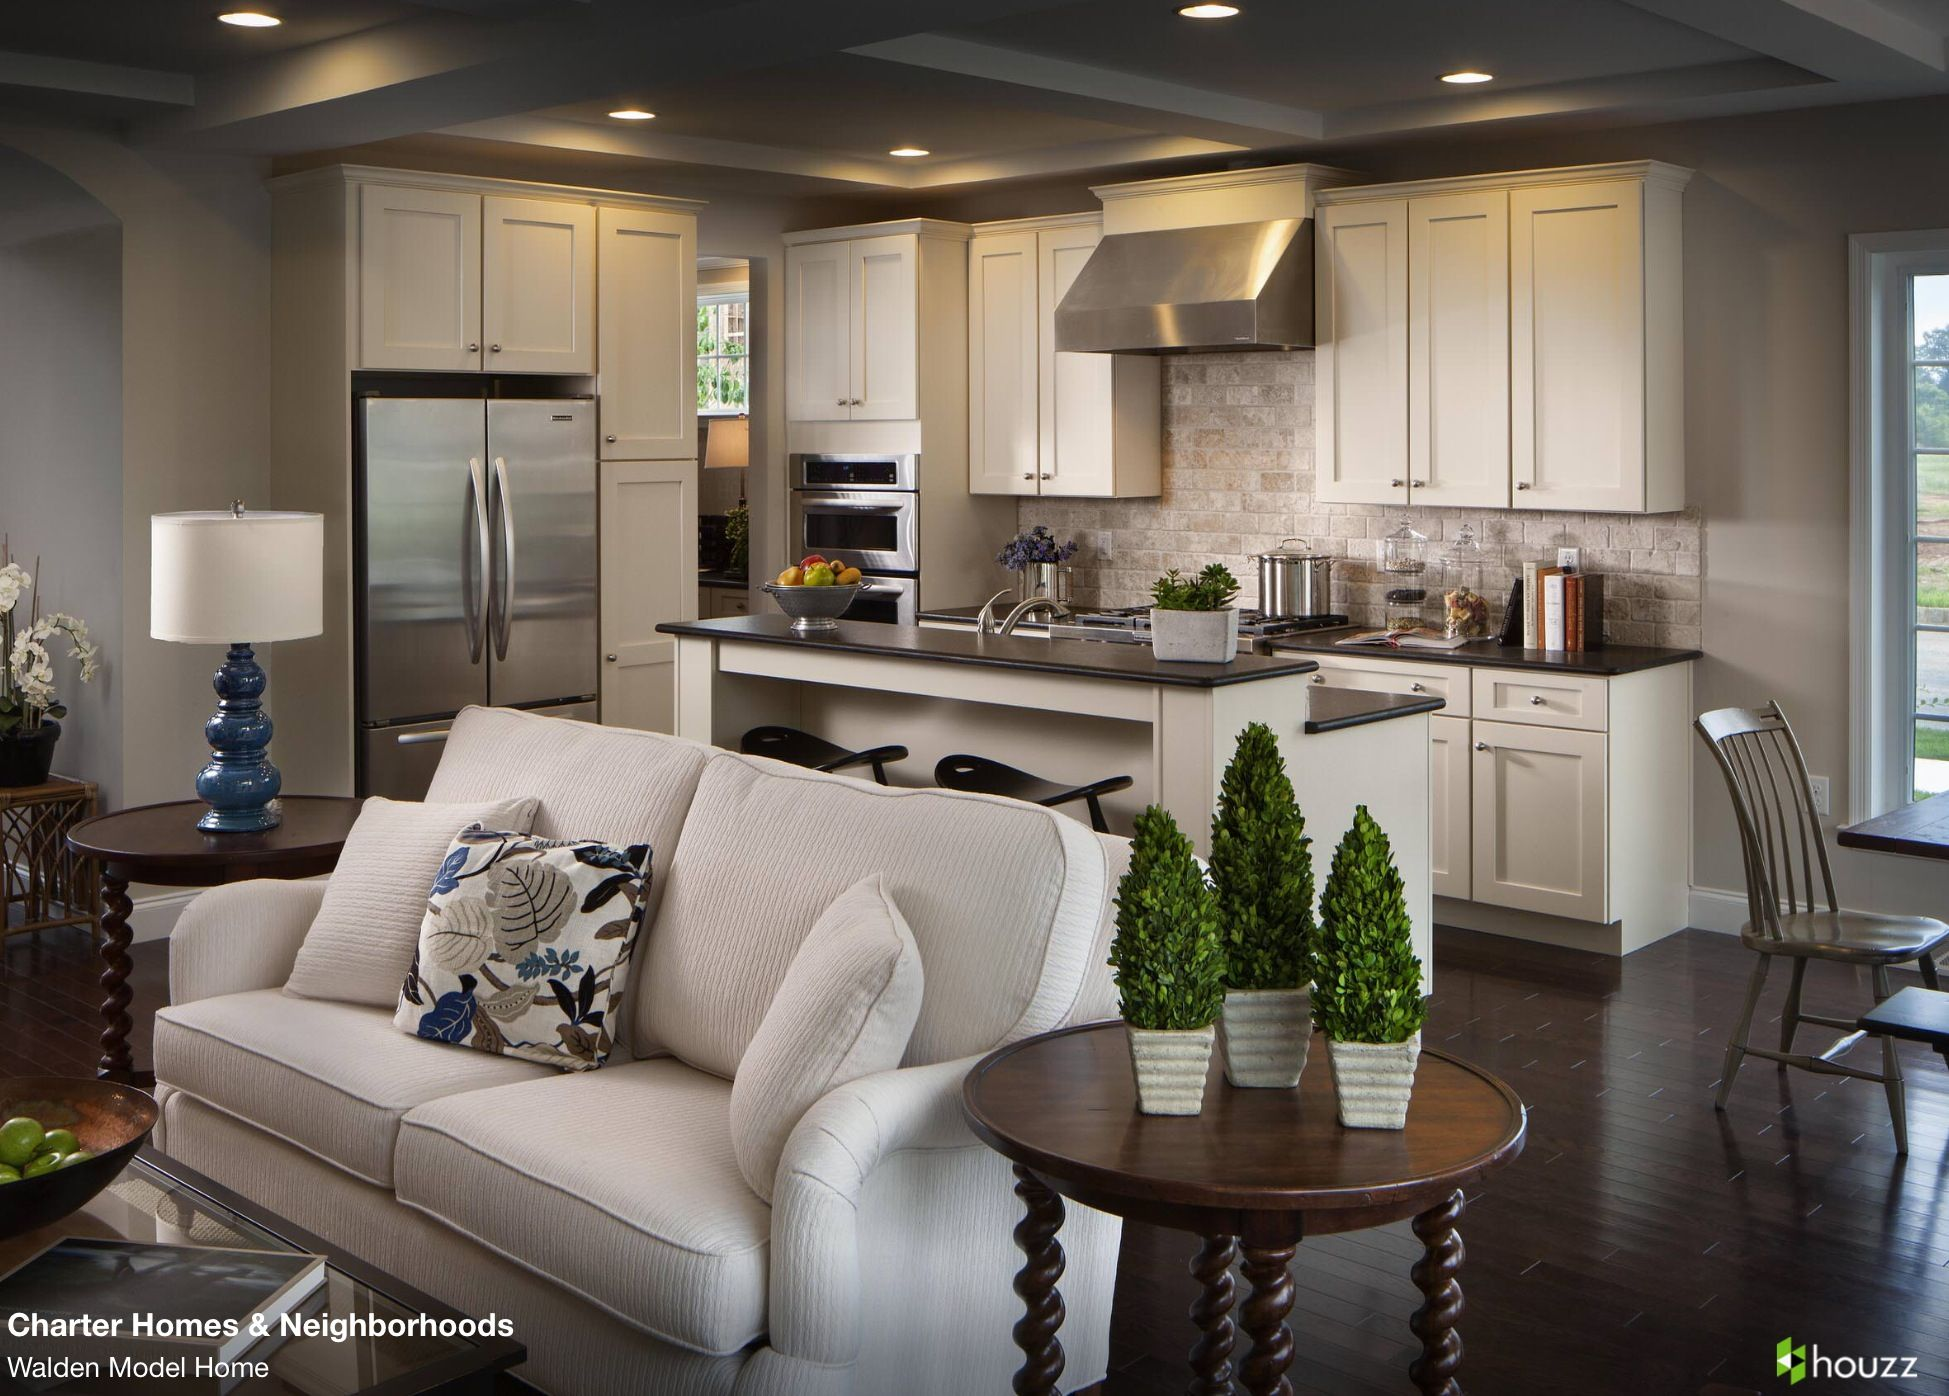 Beautiful Open Kitchen And Living Room Area Open Concept Kitchen Living Room Living Room And Kitchen Design Open Kitchen And Living Room